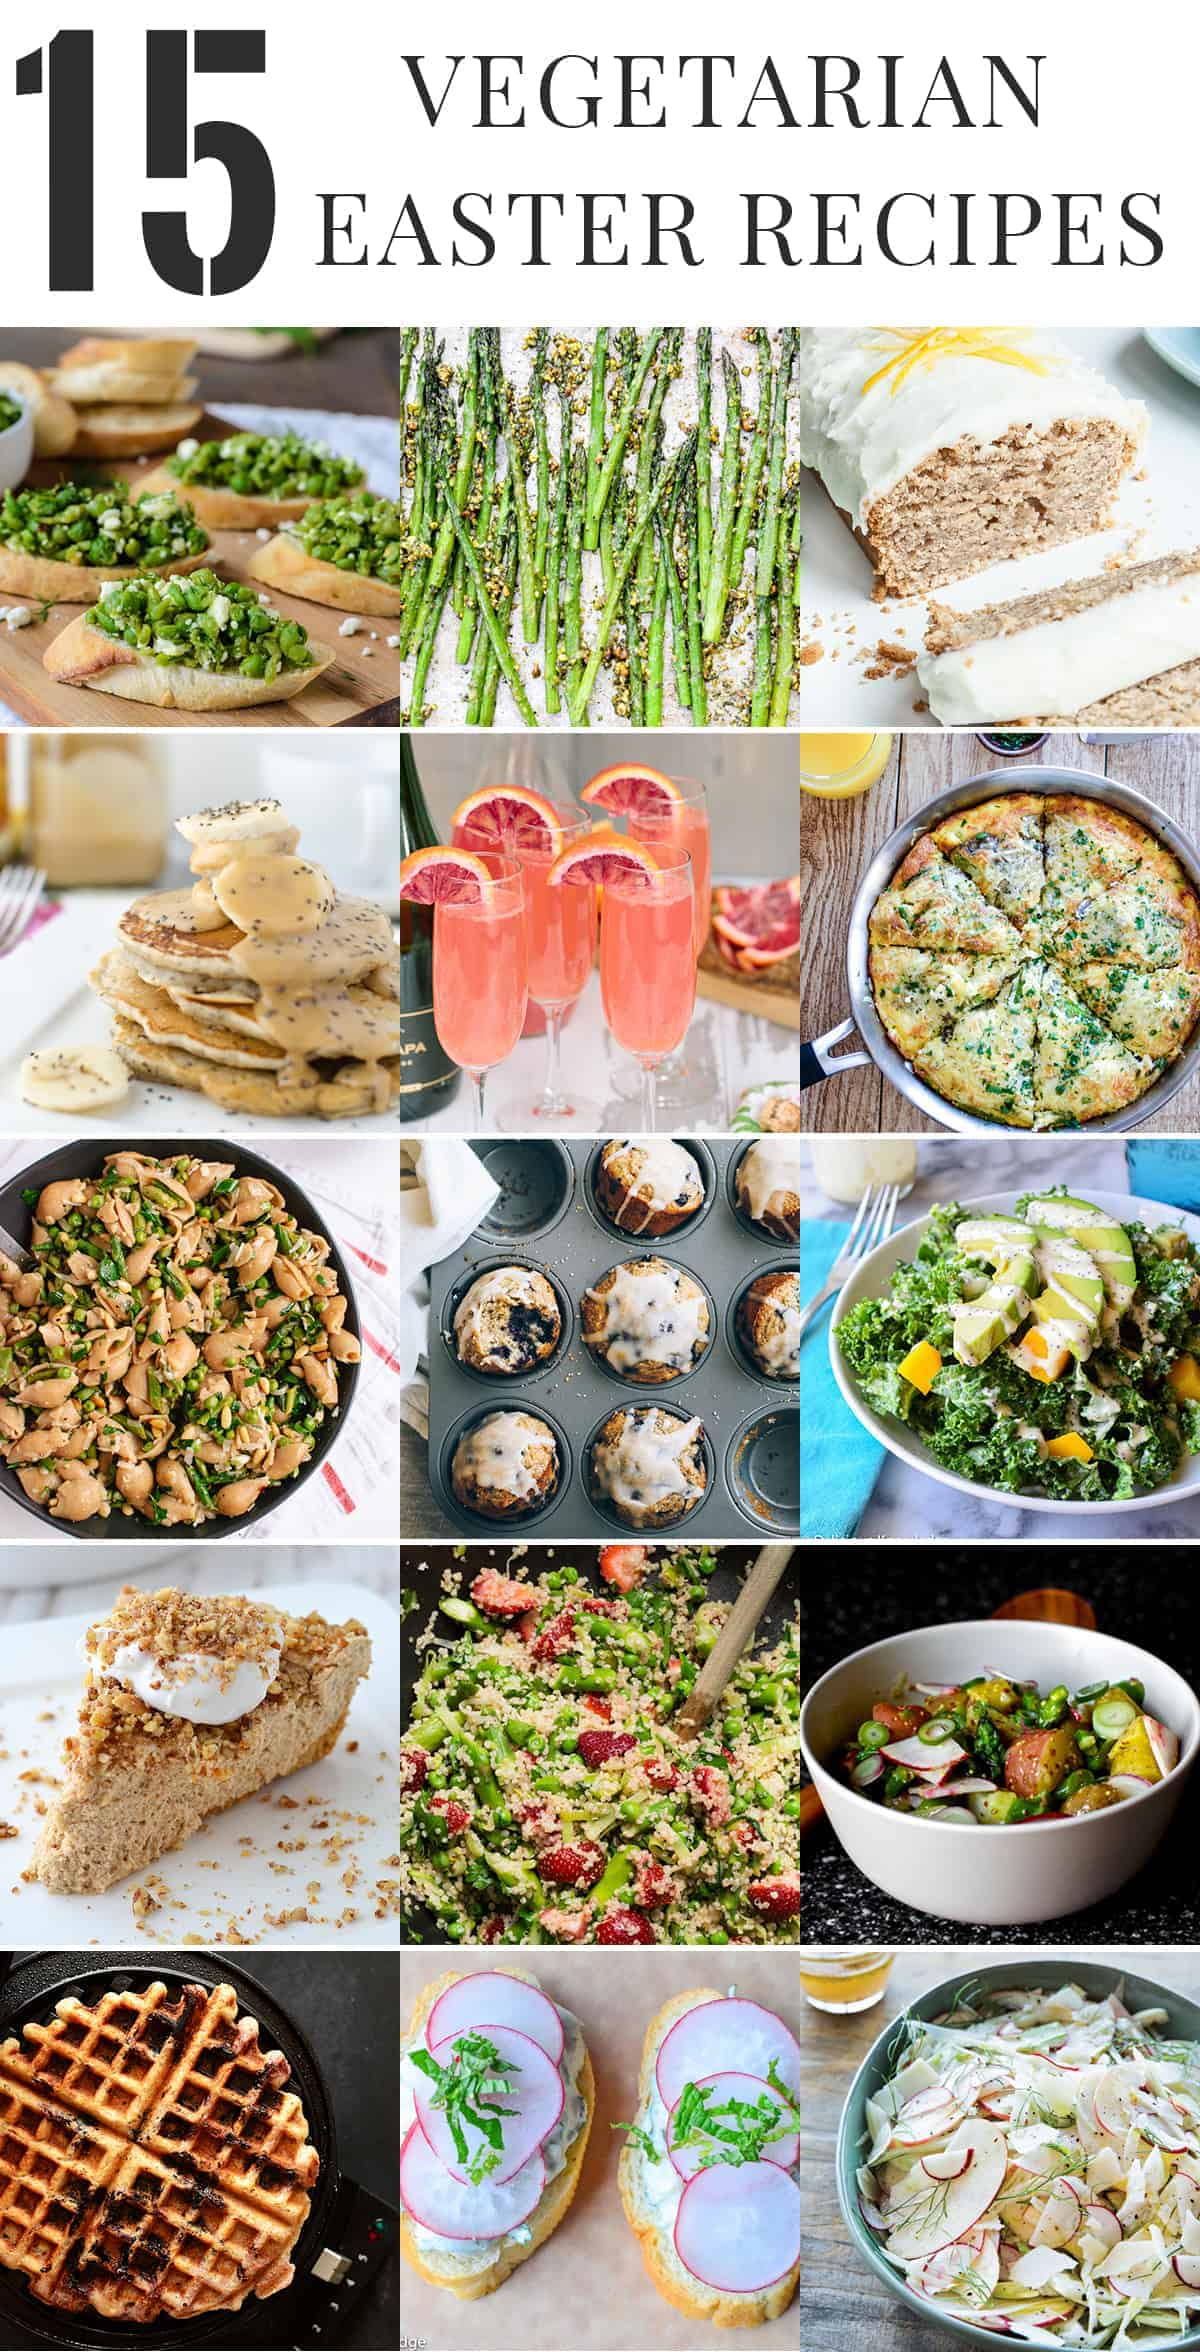 Healthy vegetarian easter recipes delish knowledge easter roundup 15 healthy vegetarian recipes perfect for your easter gathering brunch forumfinder Choice Image